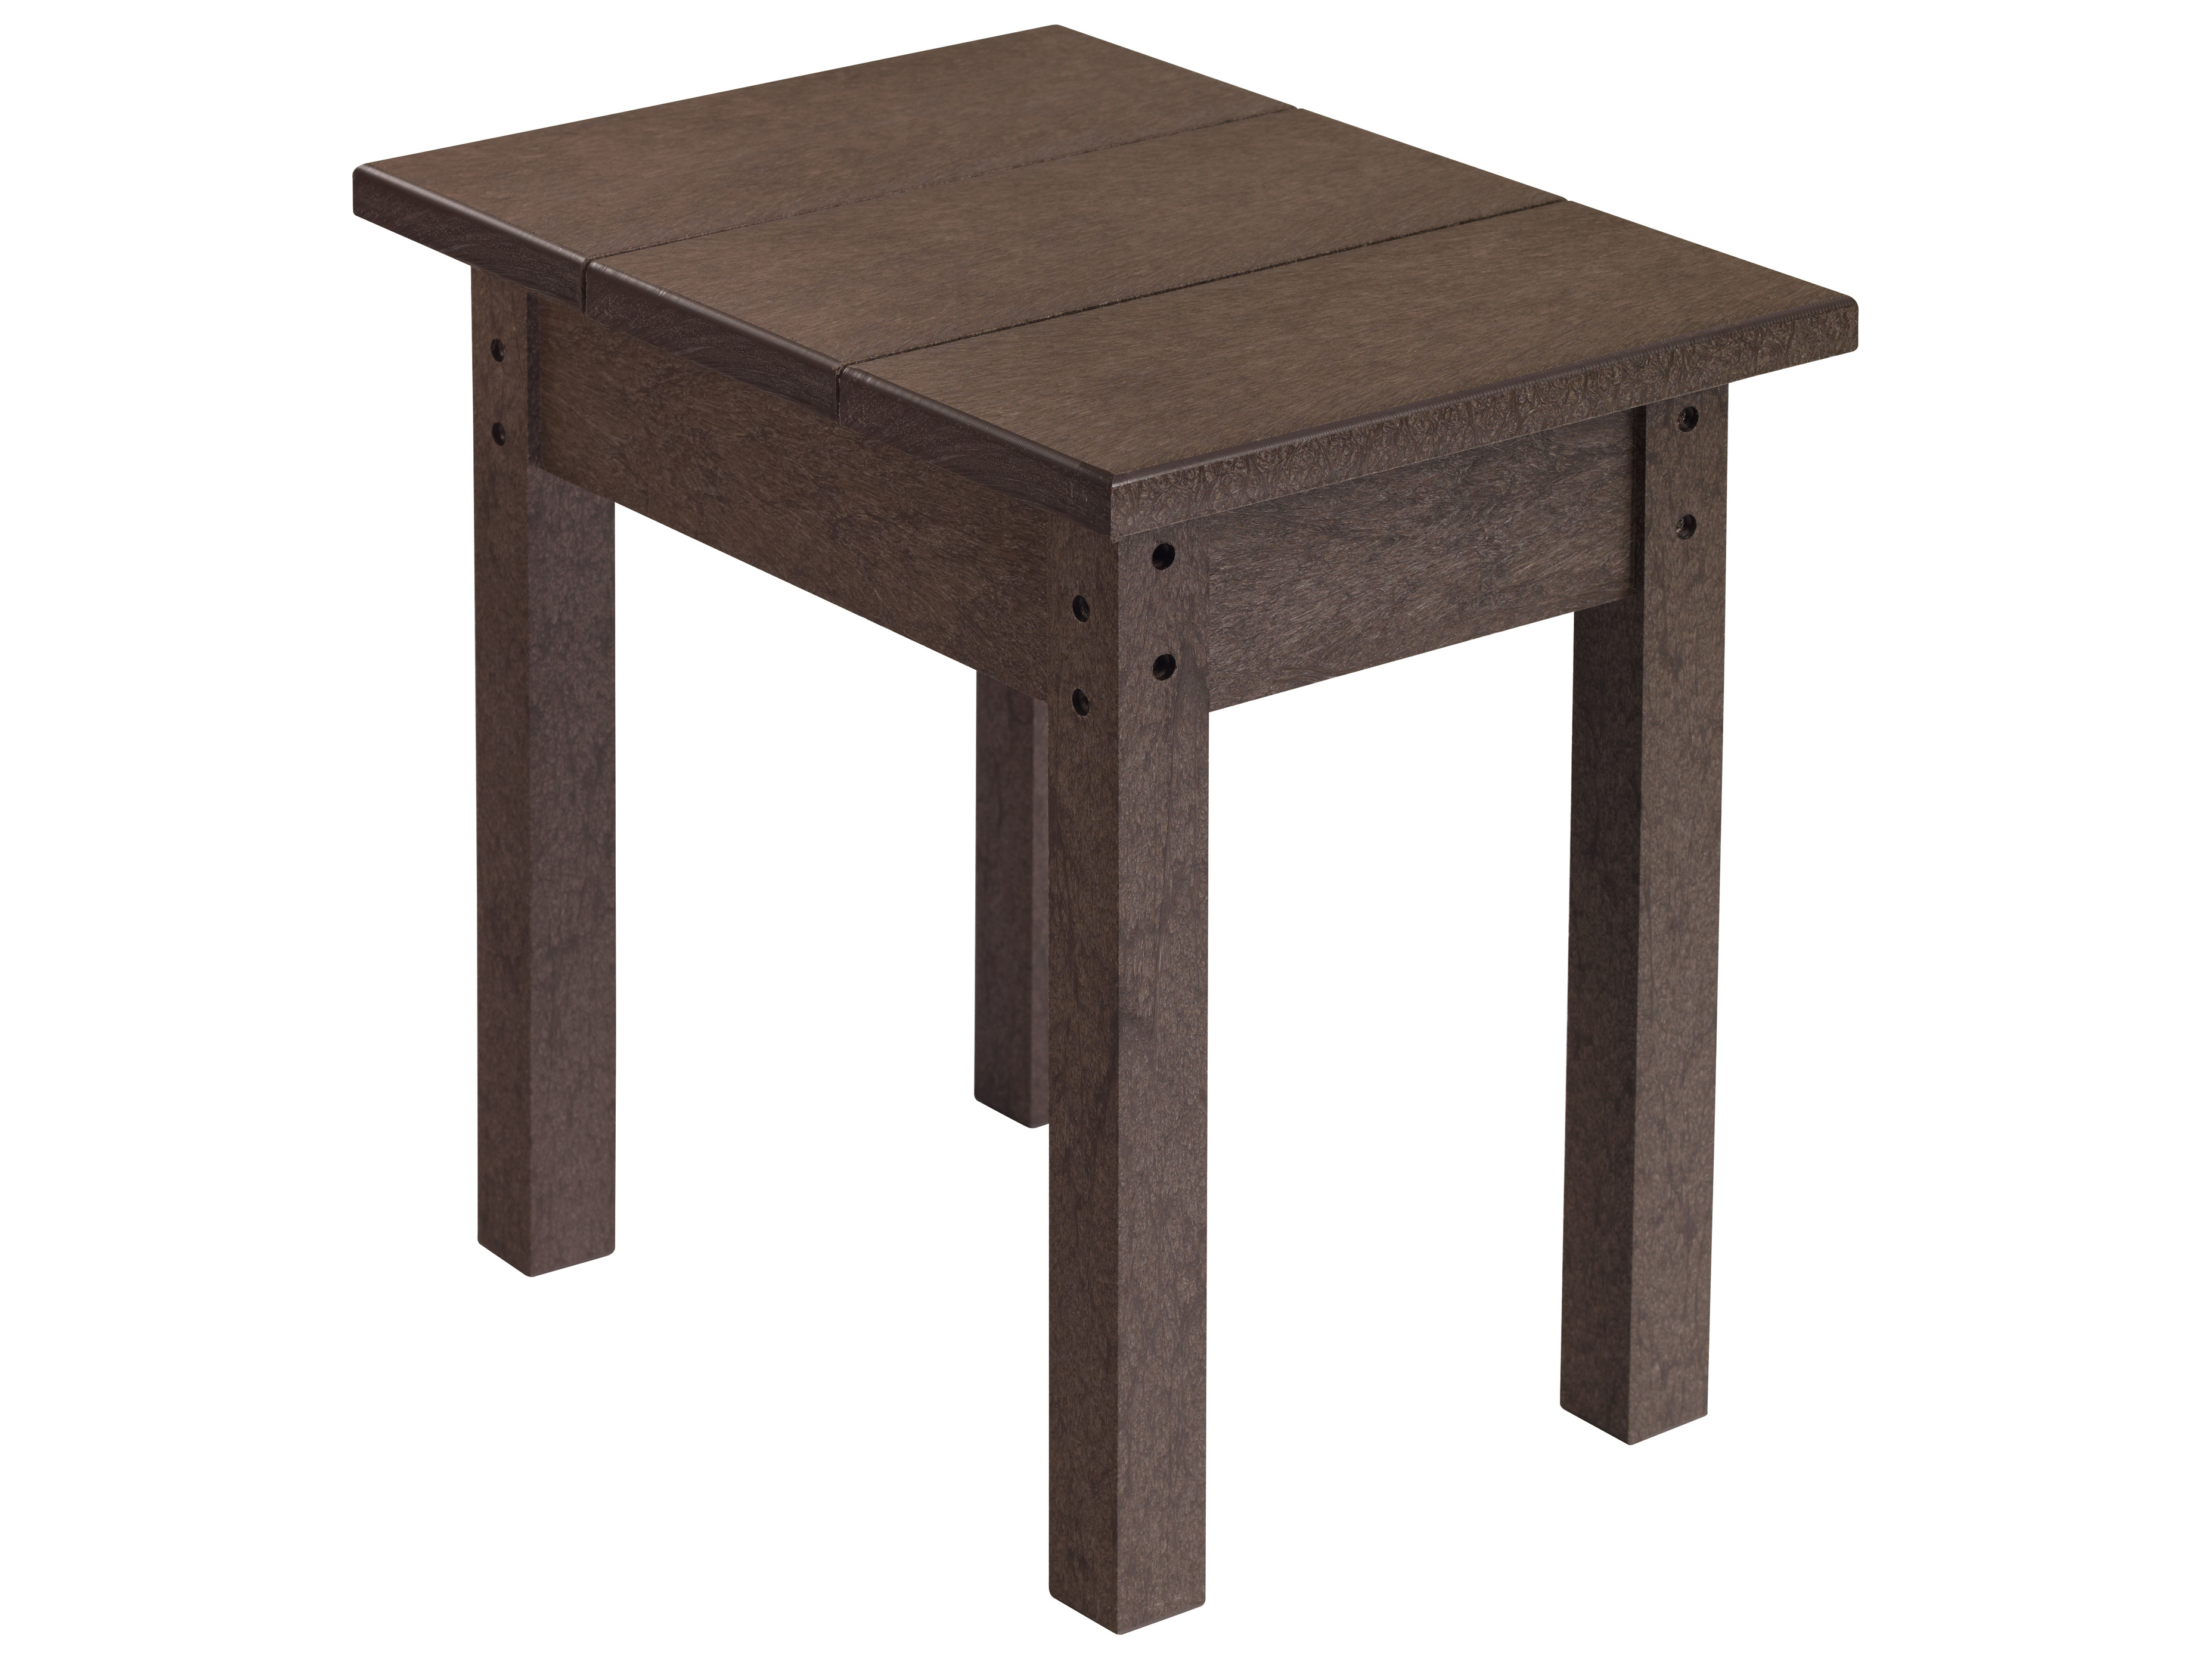 C r plastic generation side table t01 for Pvc patio table